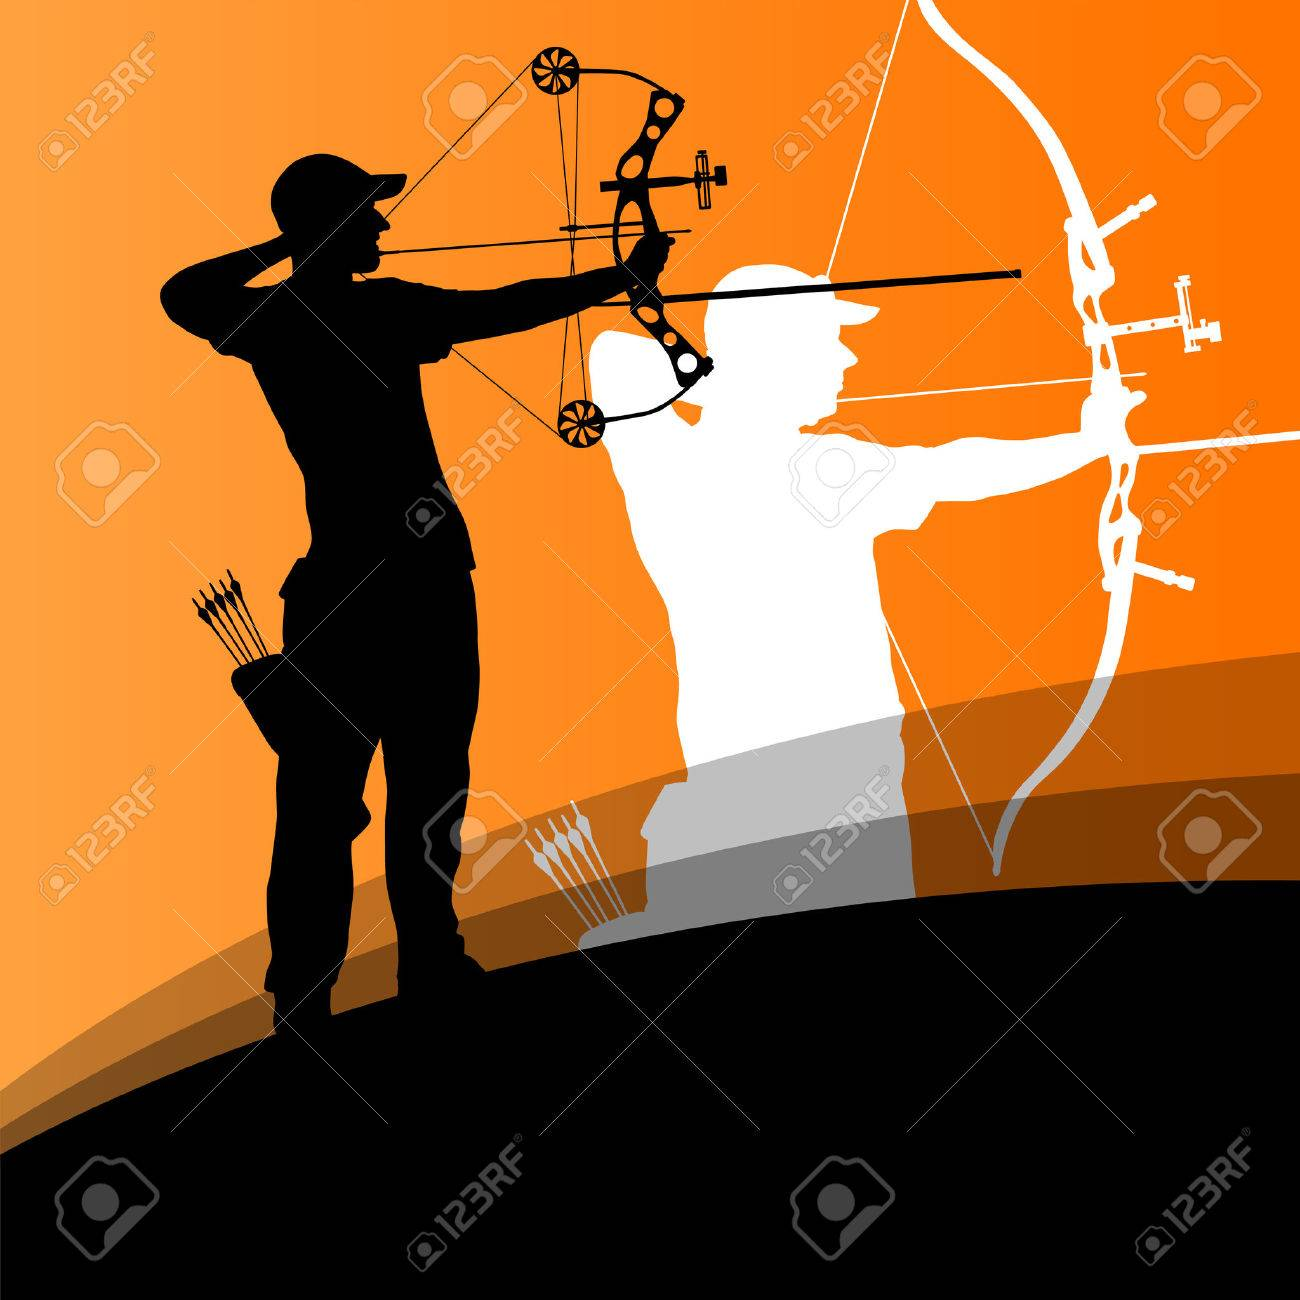 Active young archery sport man and woman silhouettes in abstract background illustration vector - 33873154